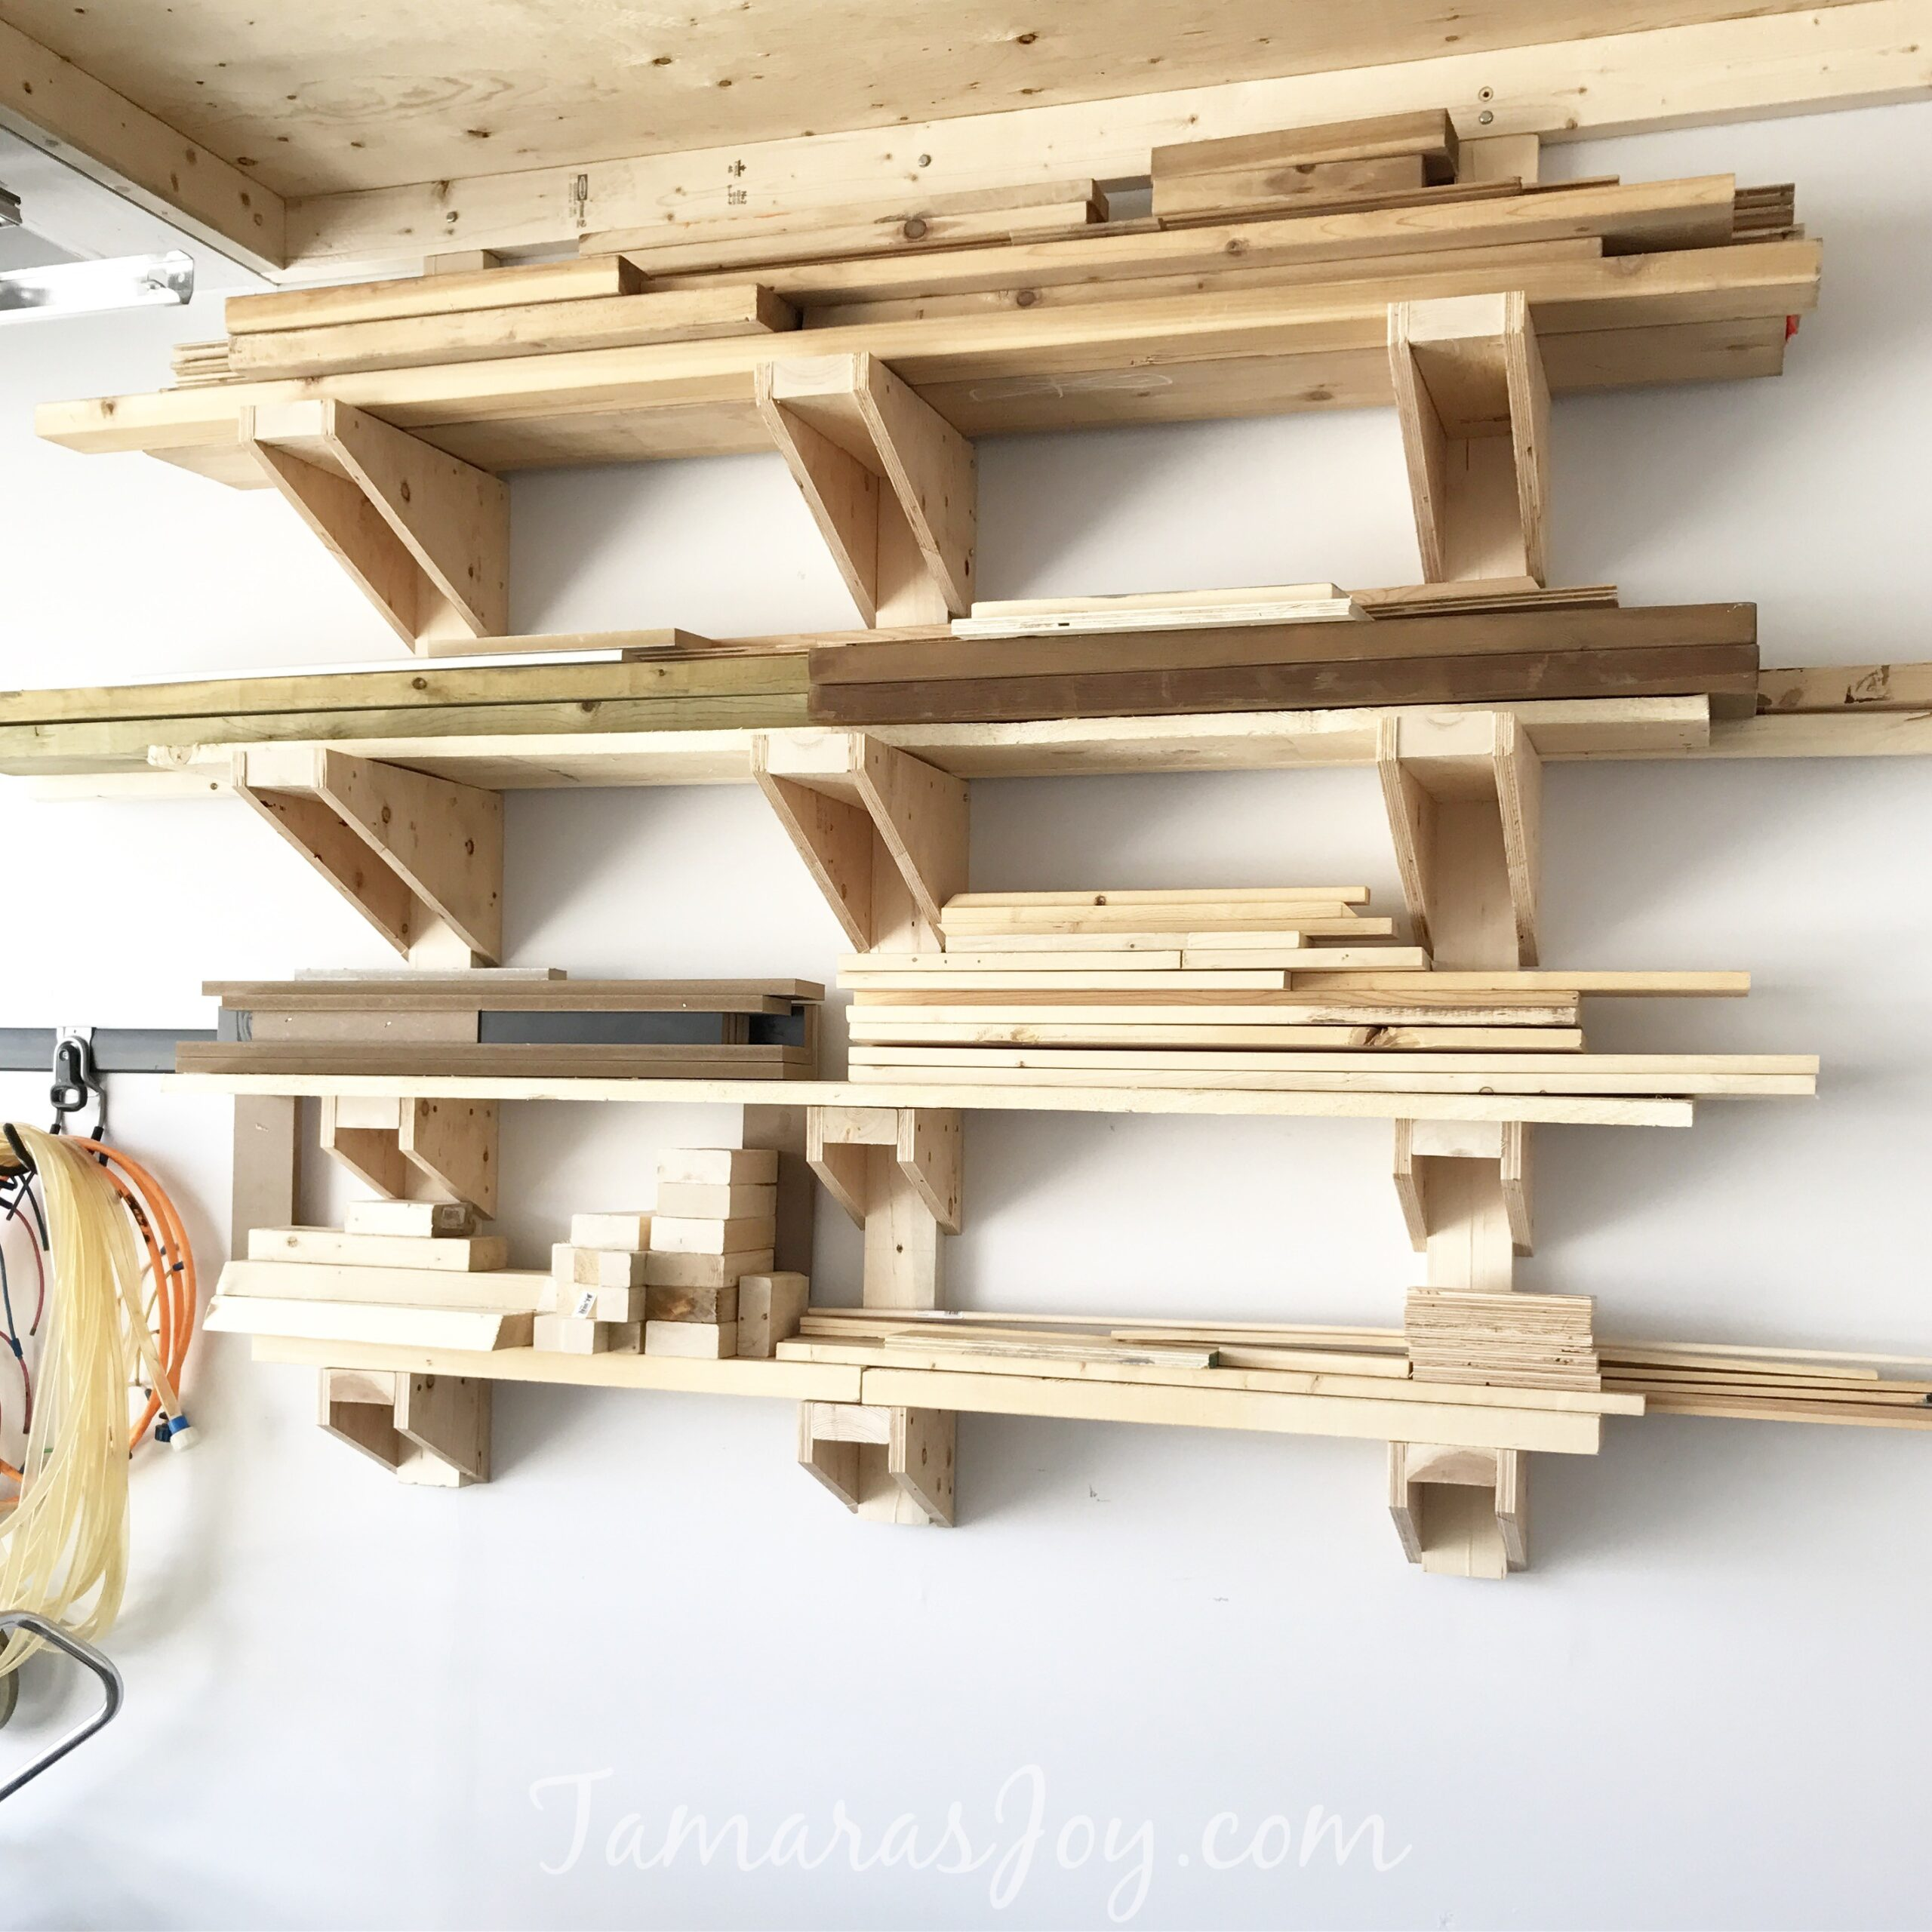 DIY Garage Lumber Rack How to Build it!  sc 1 st  Tamarau0027s Joy & A Simple DIY Garage Lumber Rack that YOU can build! - Tamarau0027s Joy